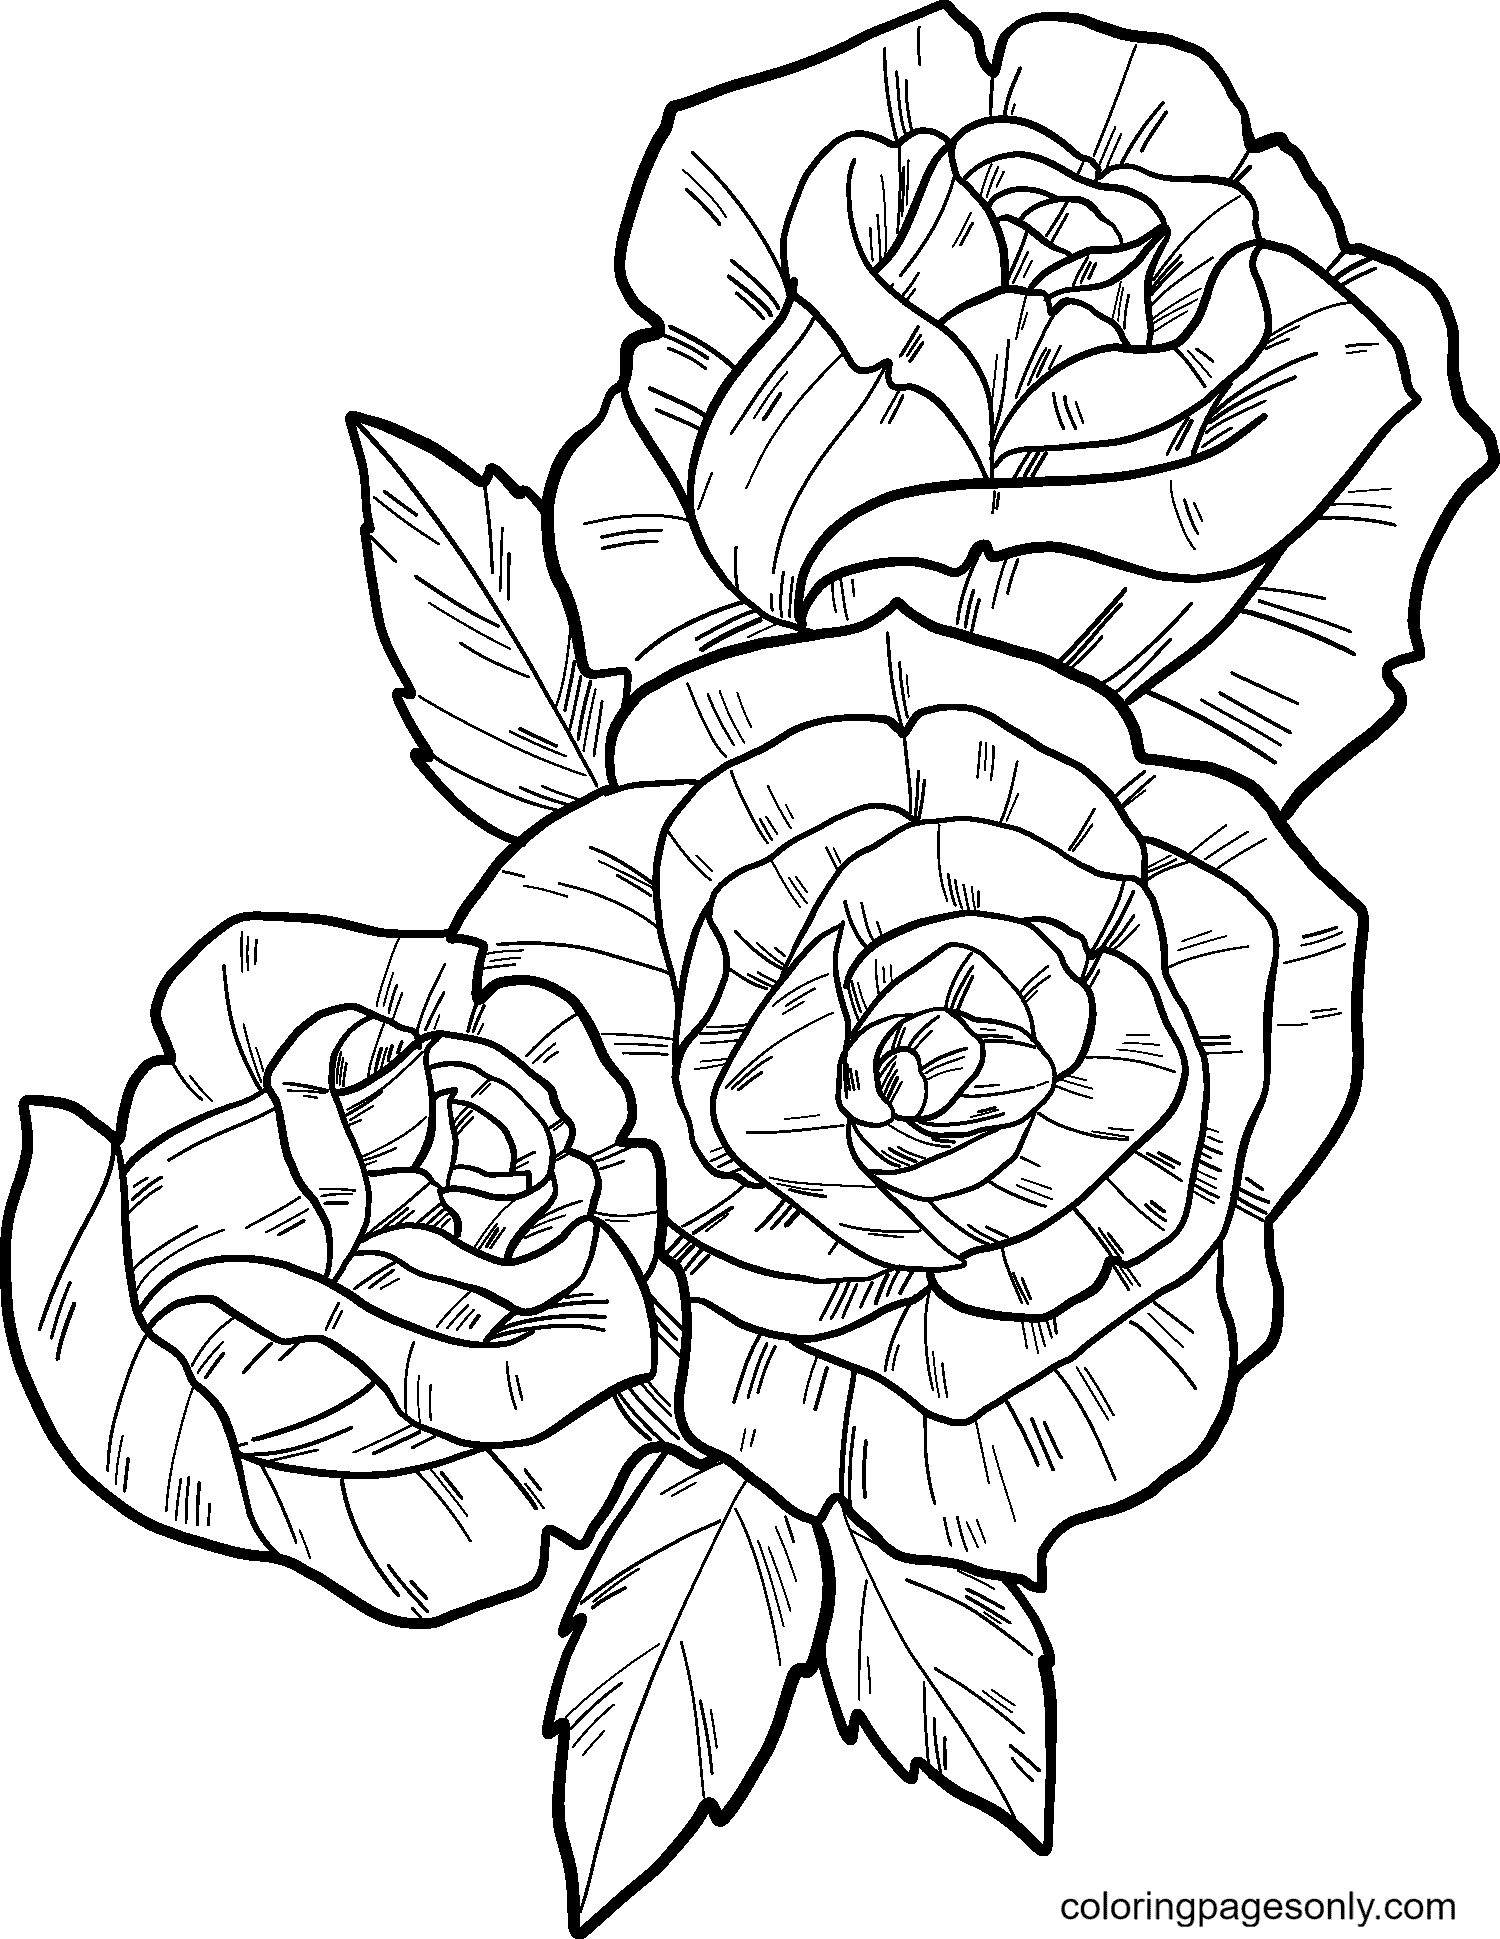 Three Beautiful Roses Coloring Page